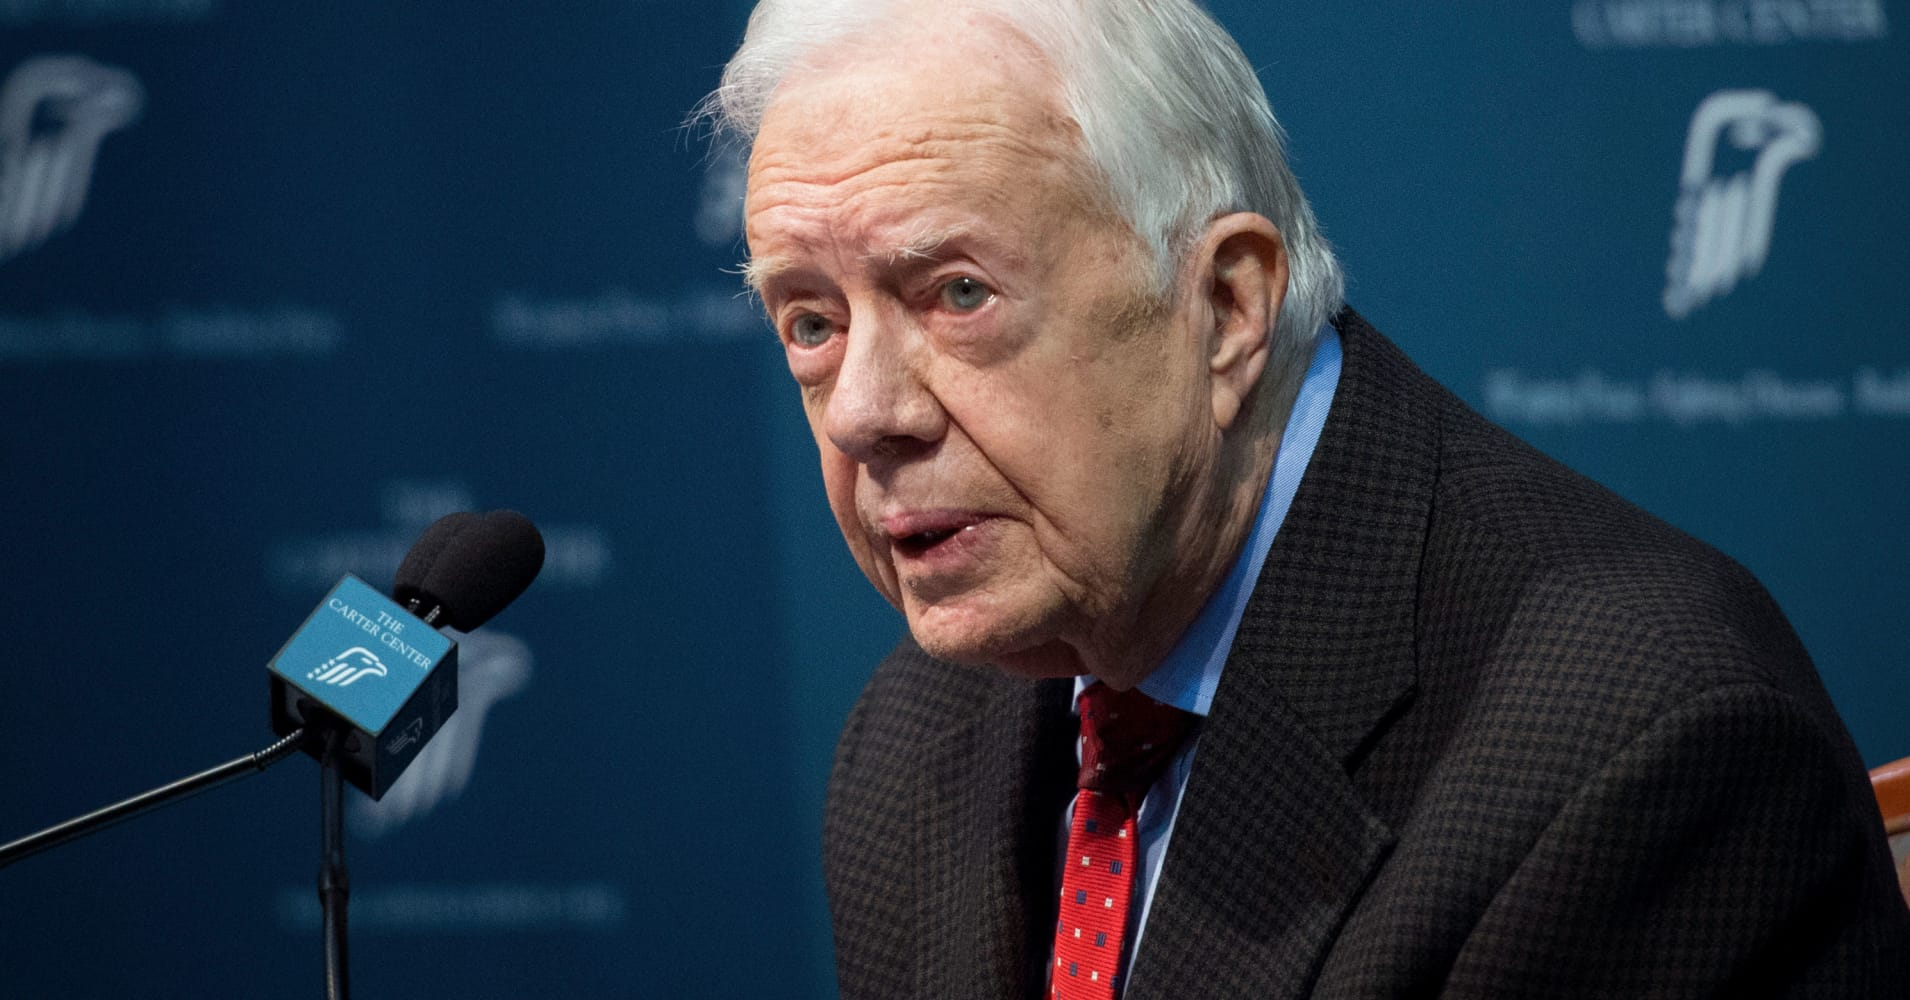 Jimmy Carter calls on Georgia GOP candidate to resign as secretary of state